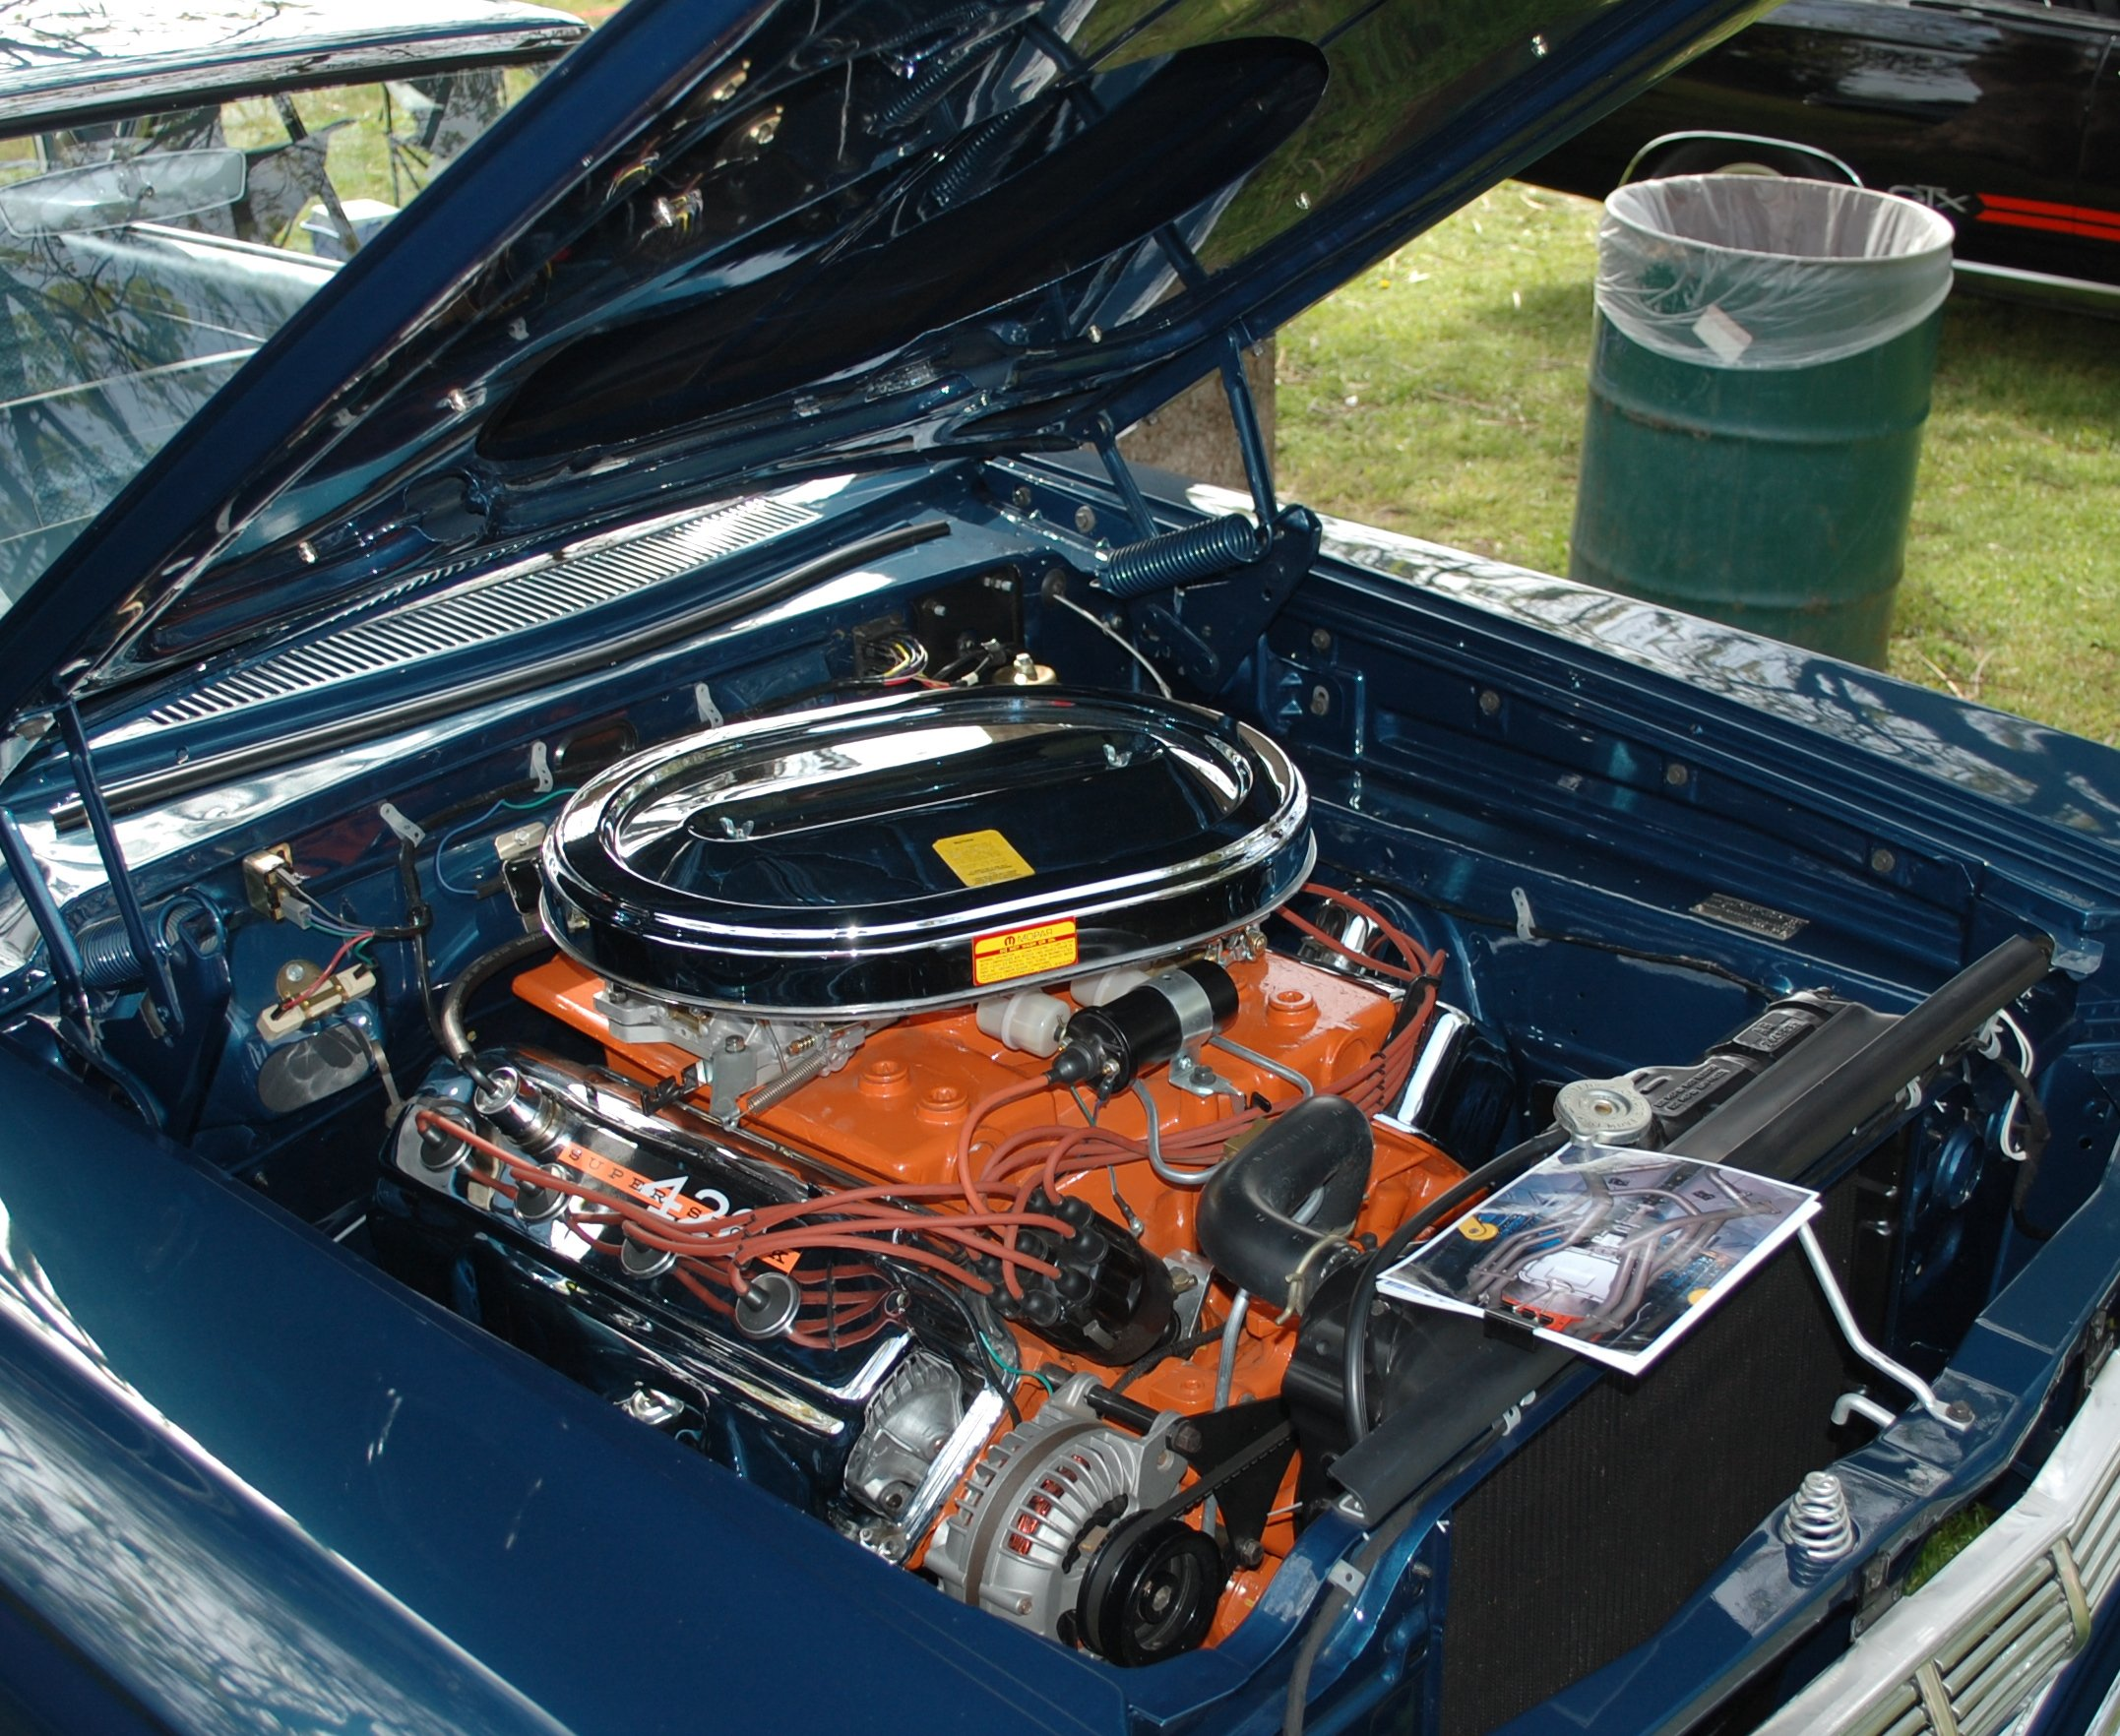 Hemi Air Cleaner : Max wedge race hemi air cleaners share the knownledge